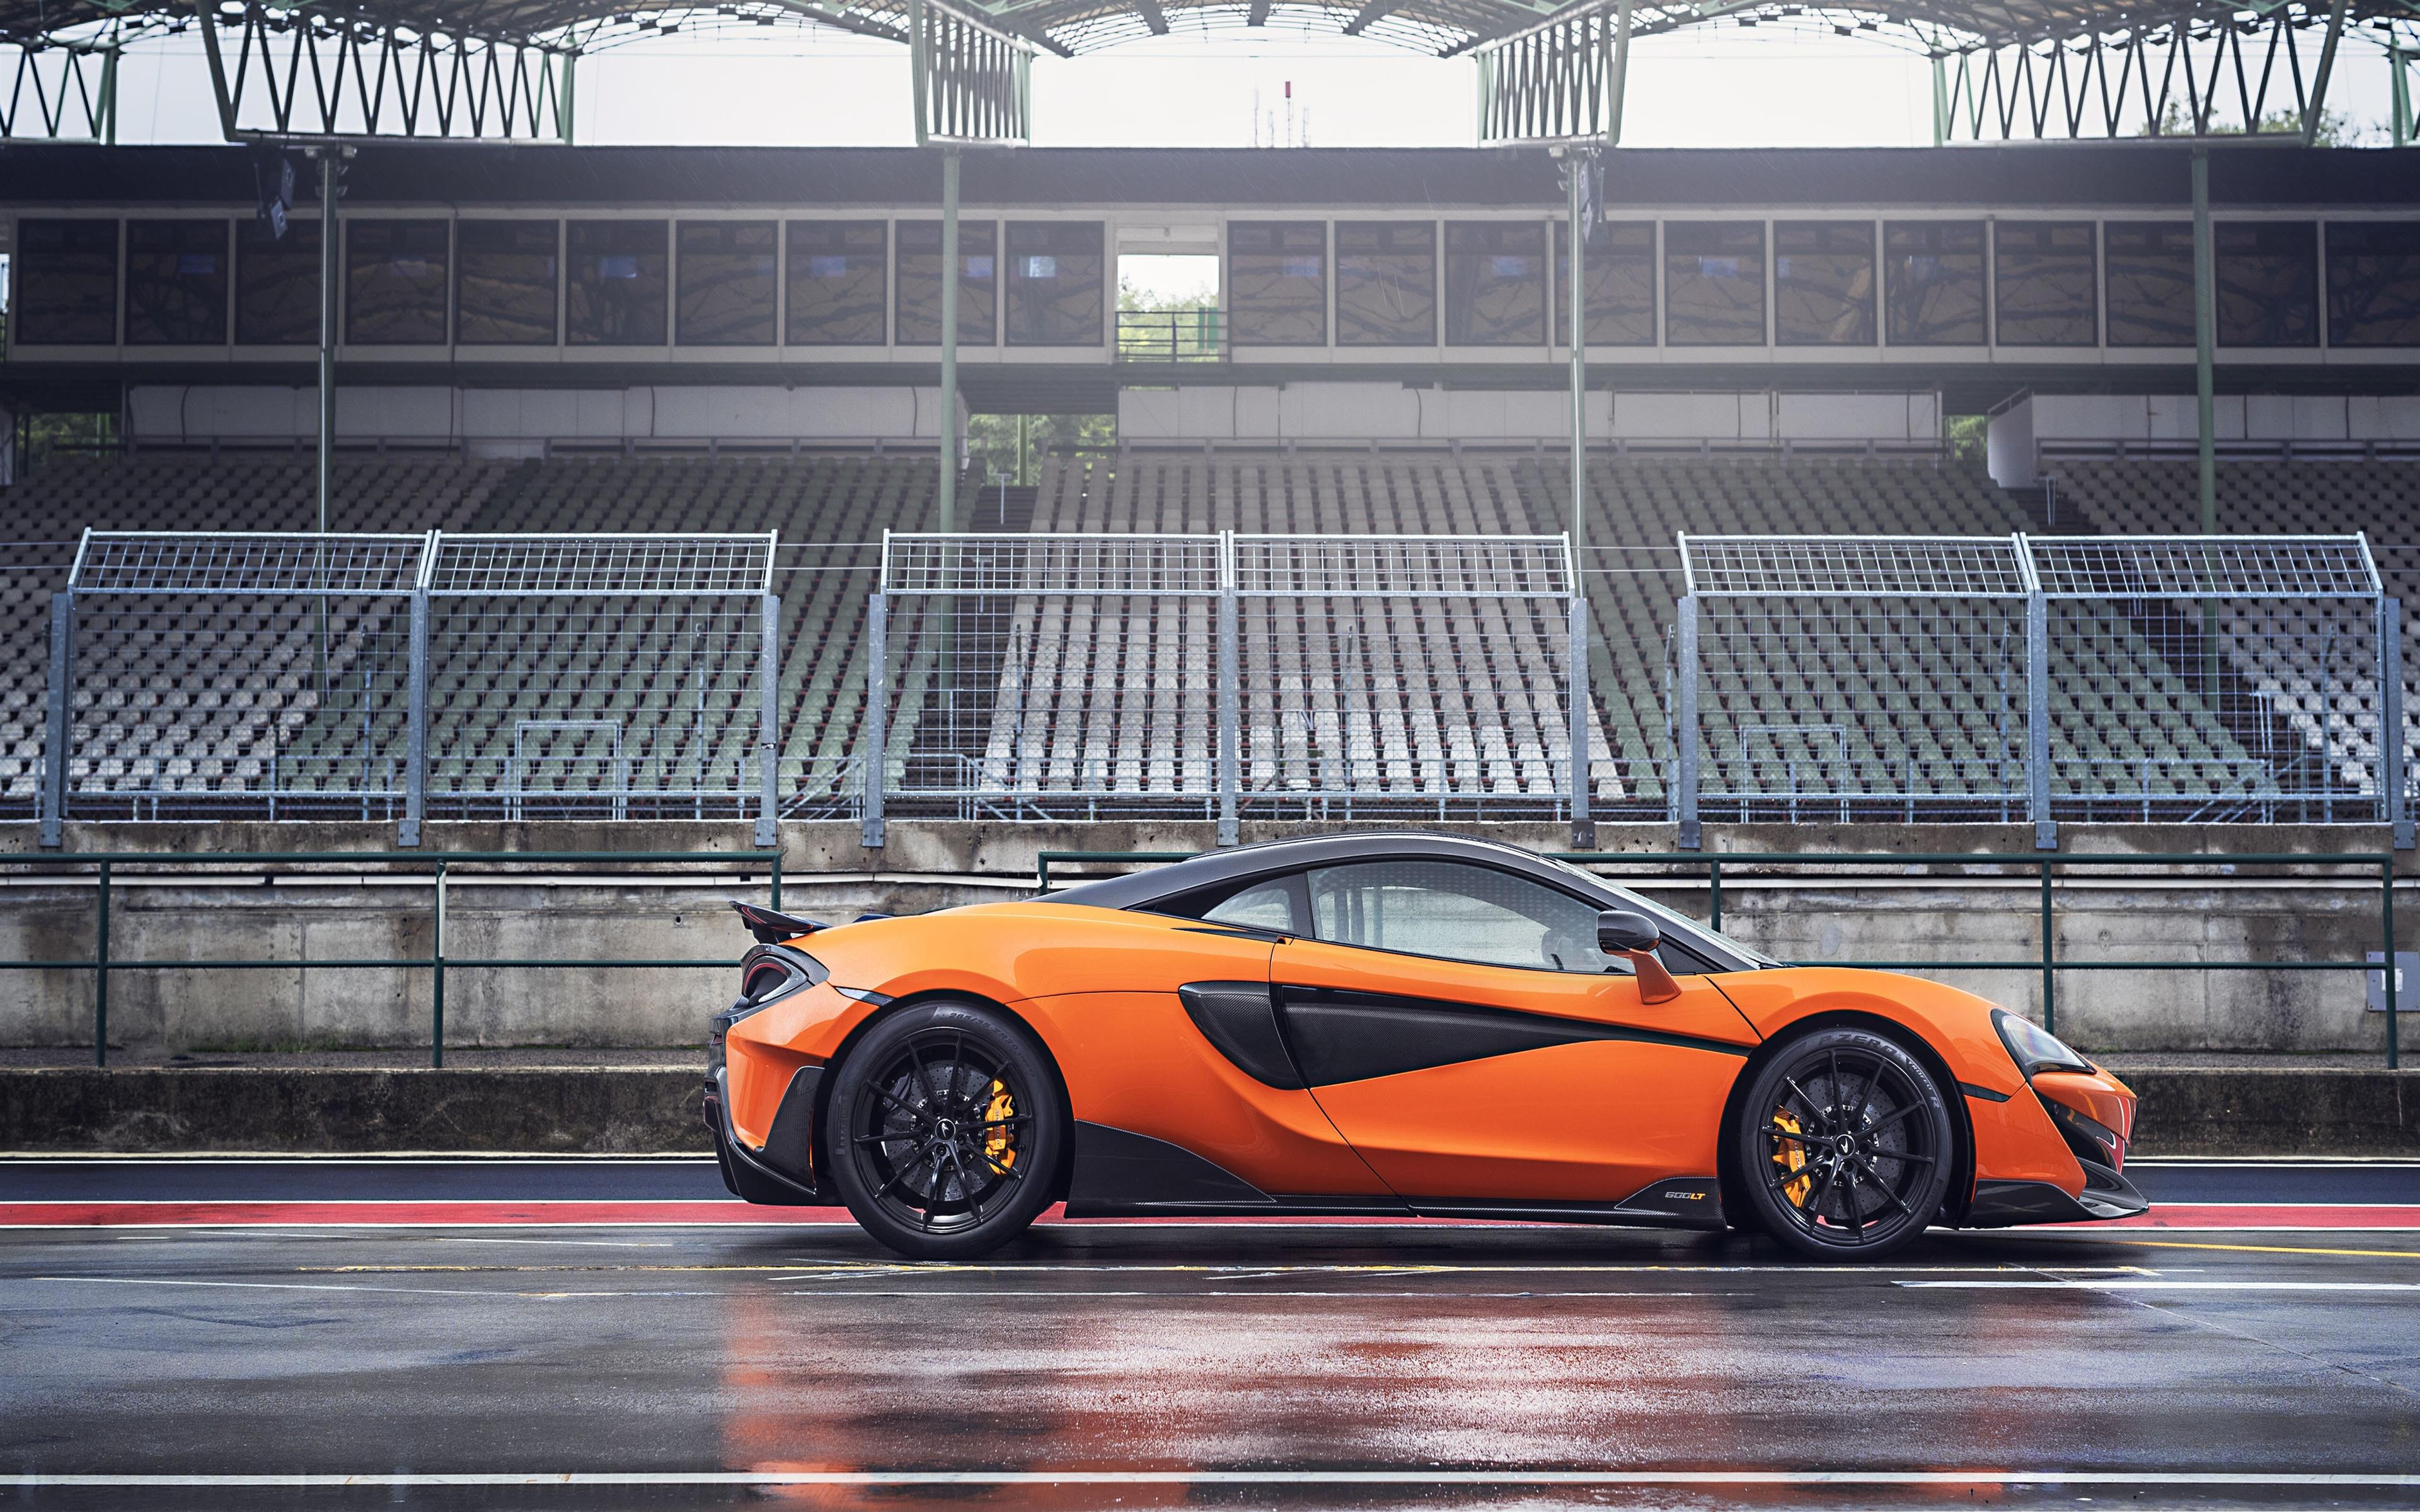 3840x2400 5K Image of 2019 McLaren 600LT Spider Car